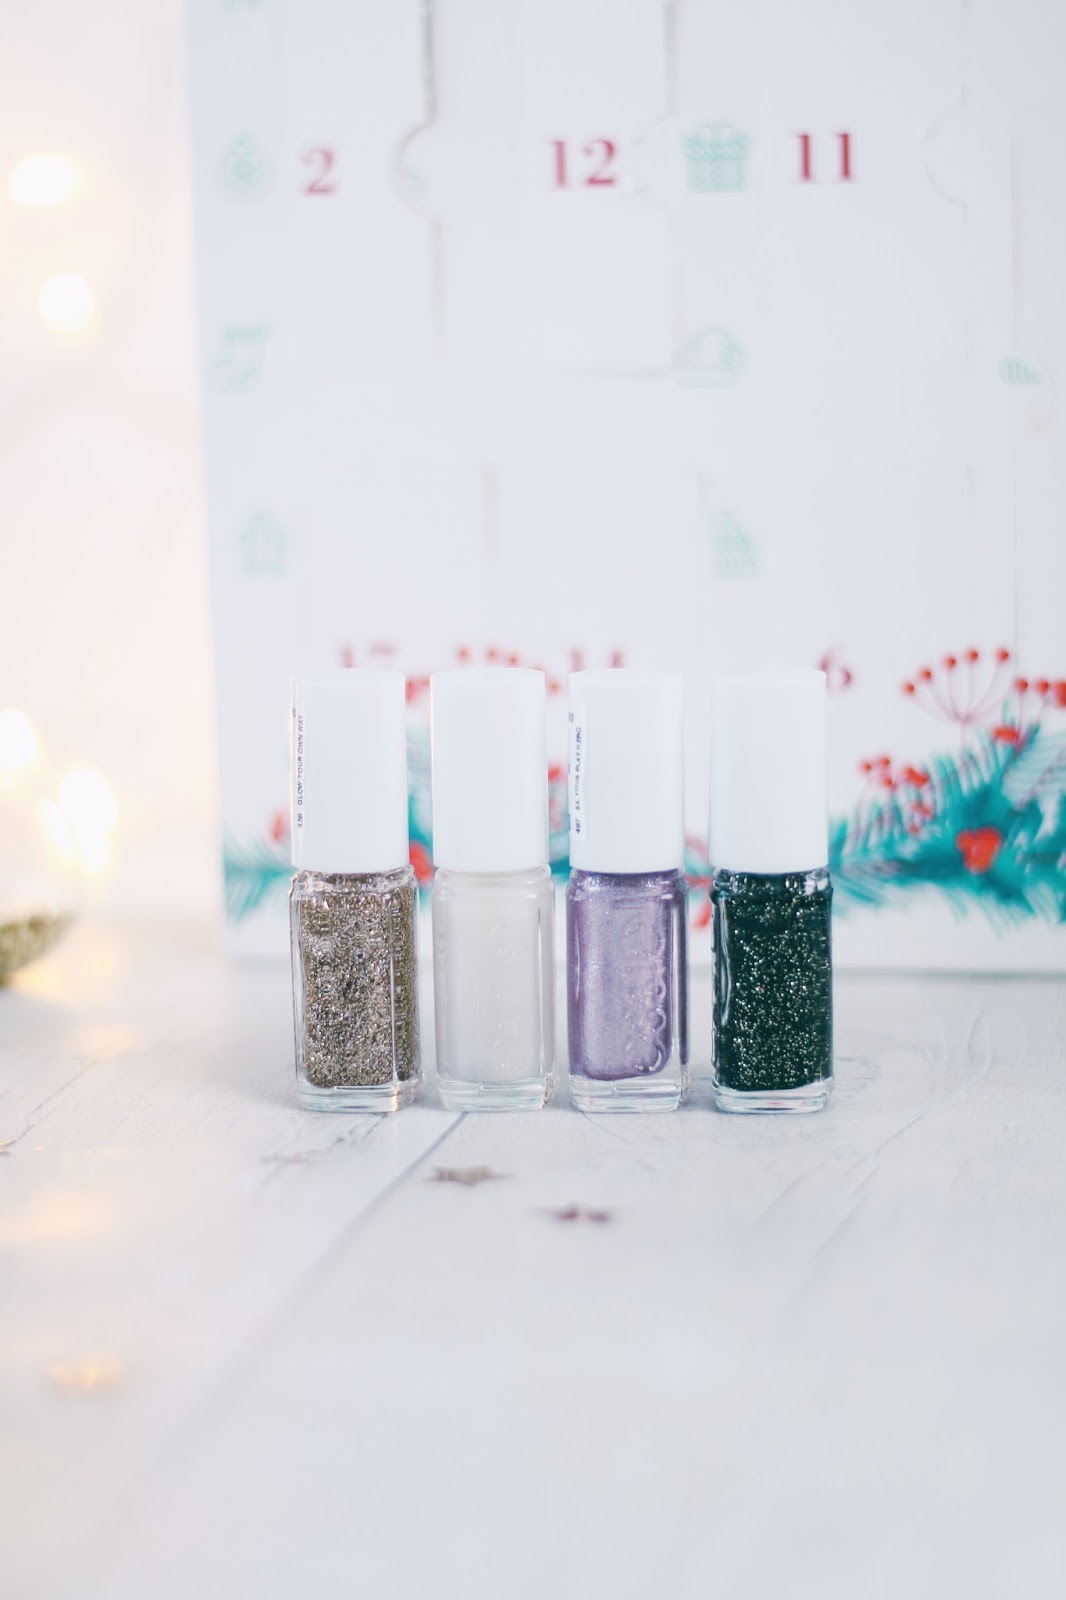 Beauty, Christmas, Drugstore, essie, Nails, essie advent calendar, essie advent calendar 2017, essie advent calendar review, essie nail polish, essie christmas nails,